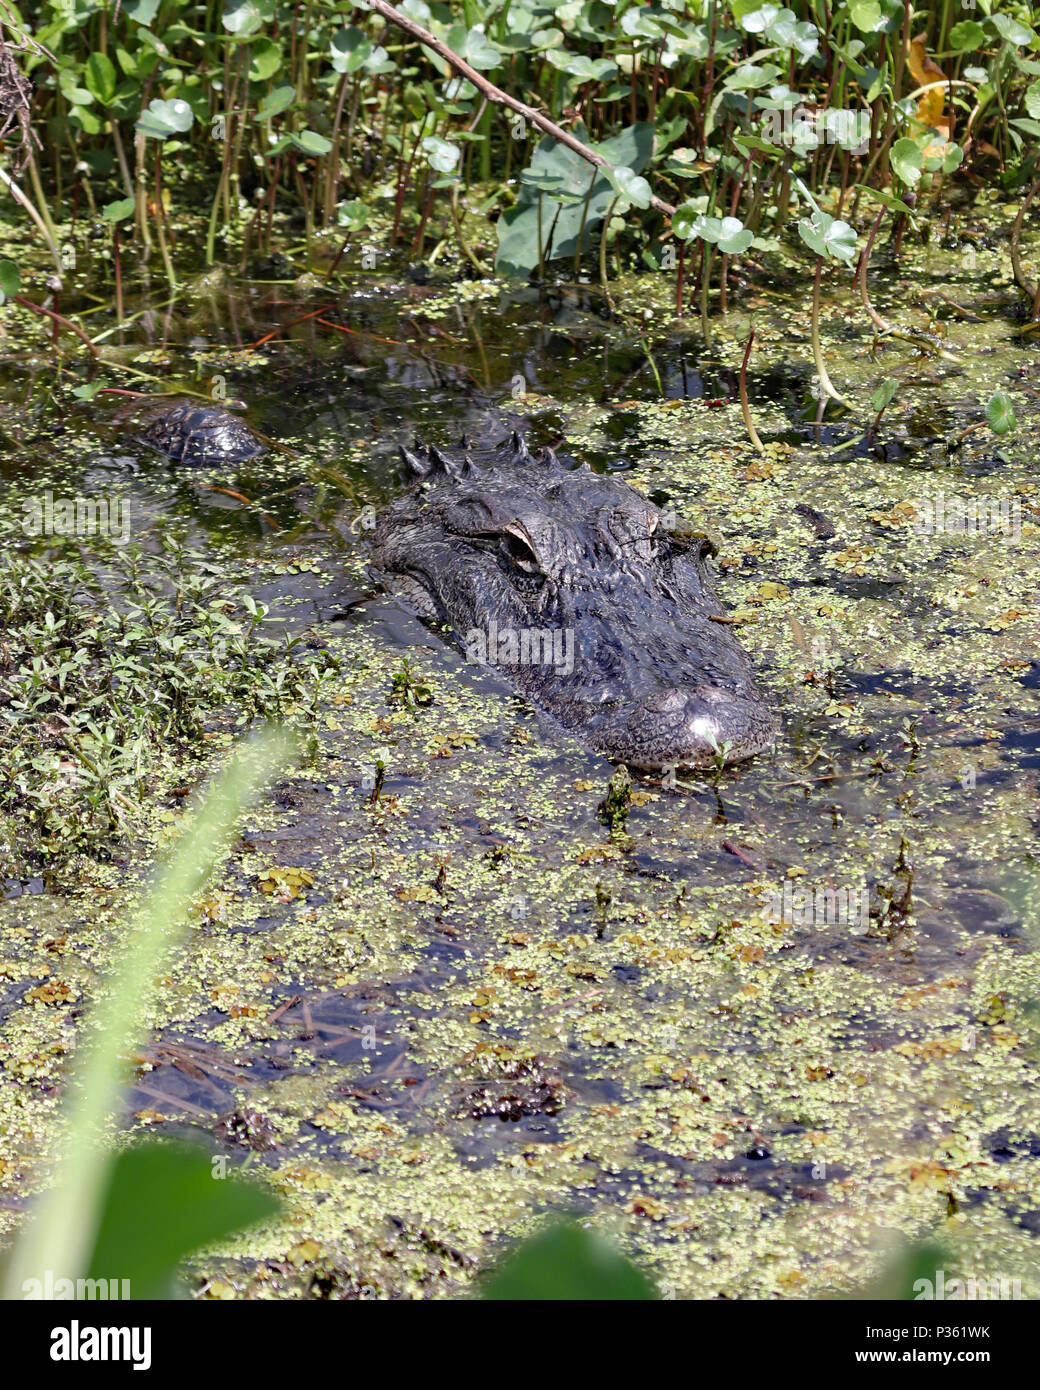 Even though the American Alligator is large, it does a good job of camouflaging itself in the Florida  swamps and marshlands - Stock Image